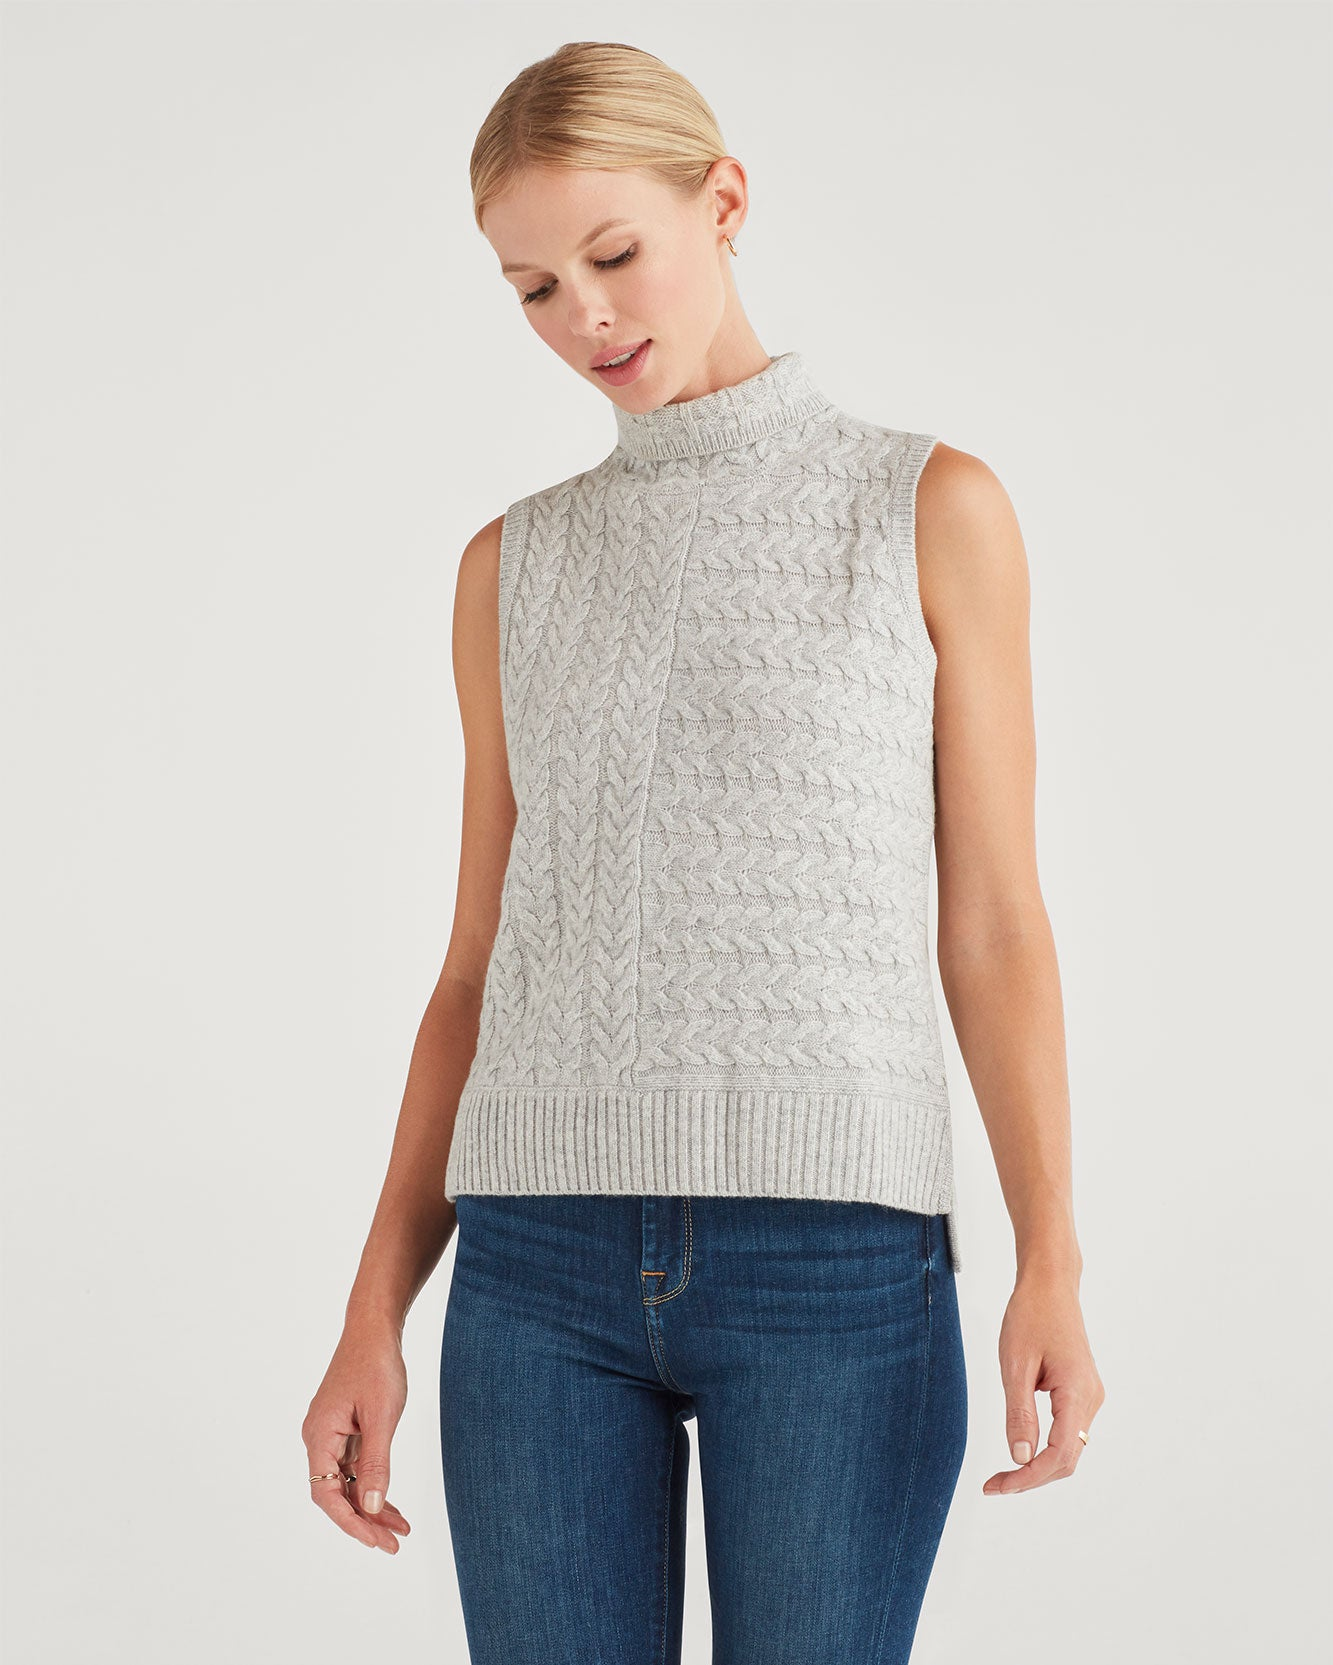 Image of Merino Wool and Cashmere Sleeveless Turtleneck in Heather Grey